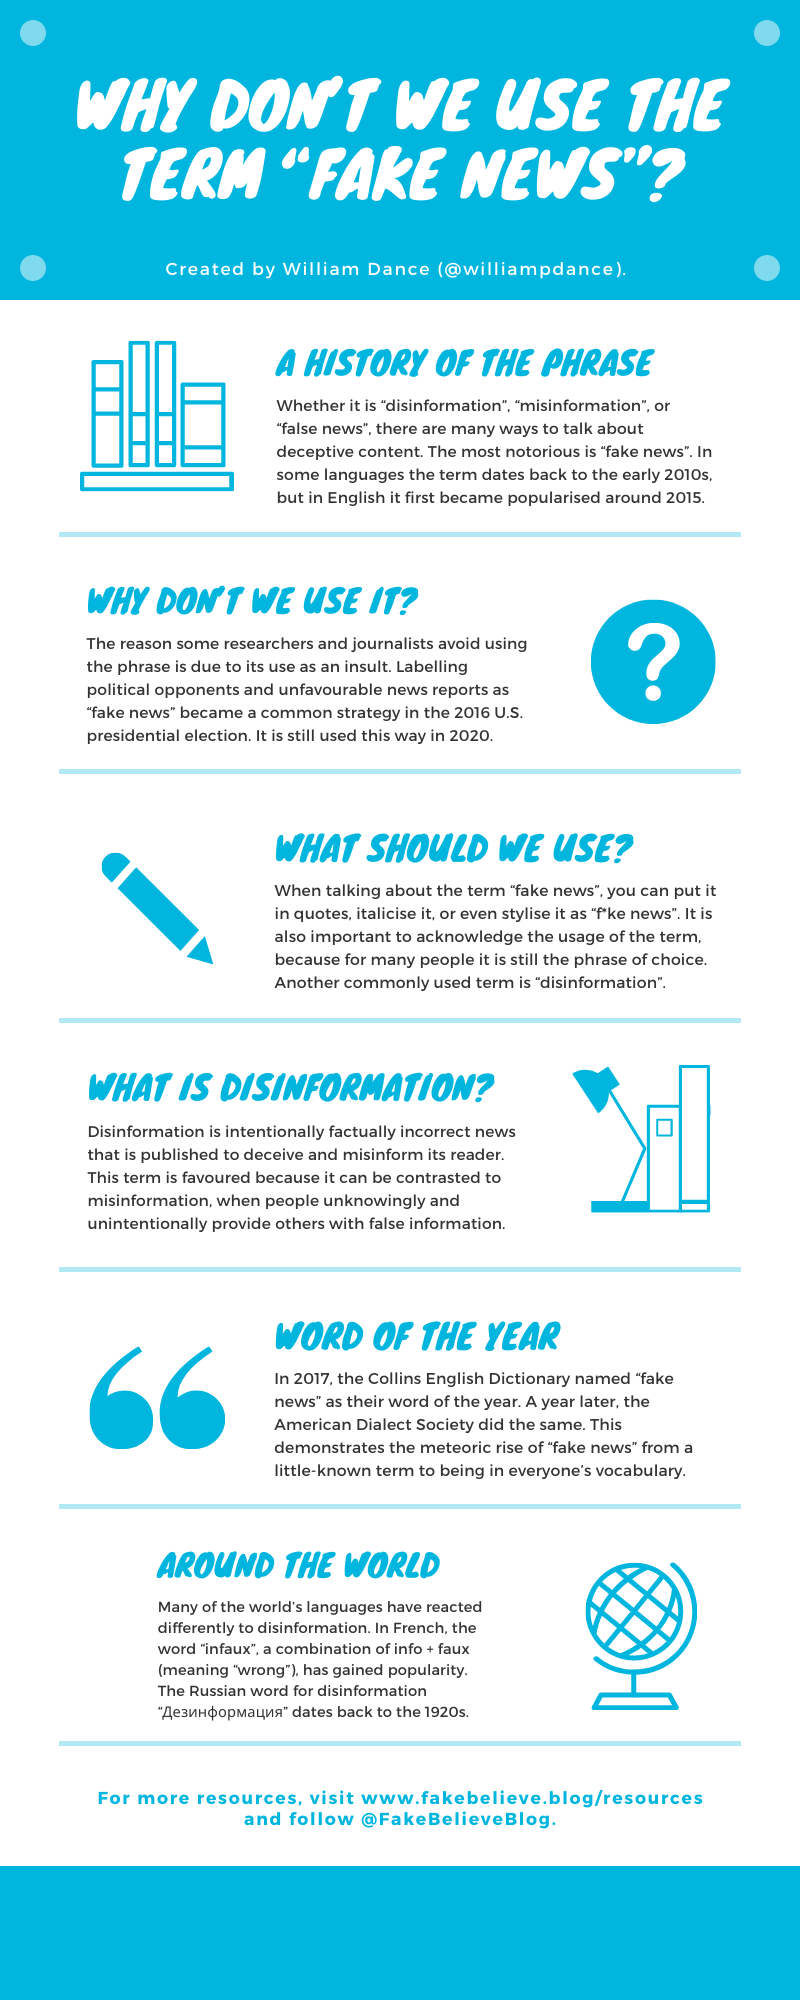 An infographic explaining why the phrase fake news is often avoided by some researchers and journalists